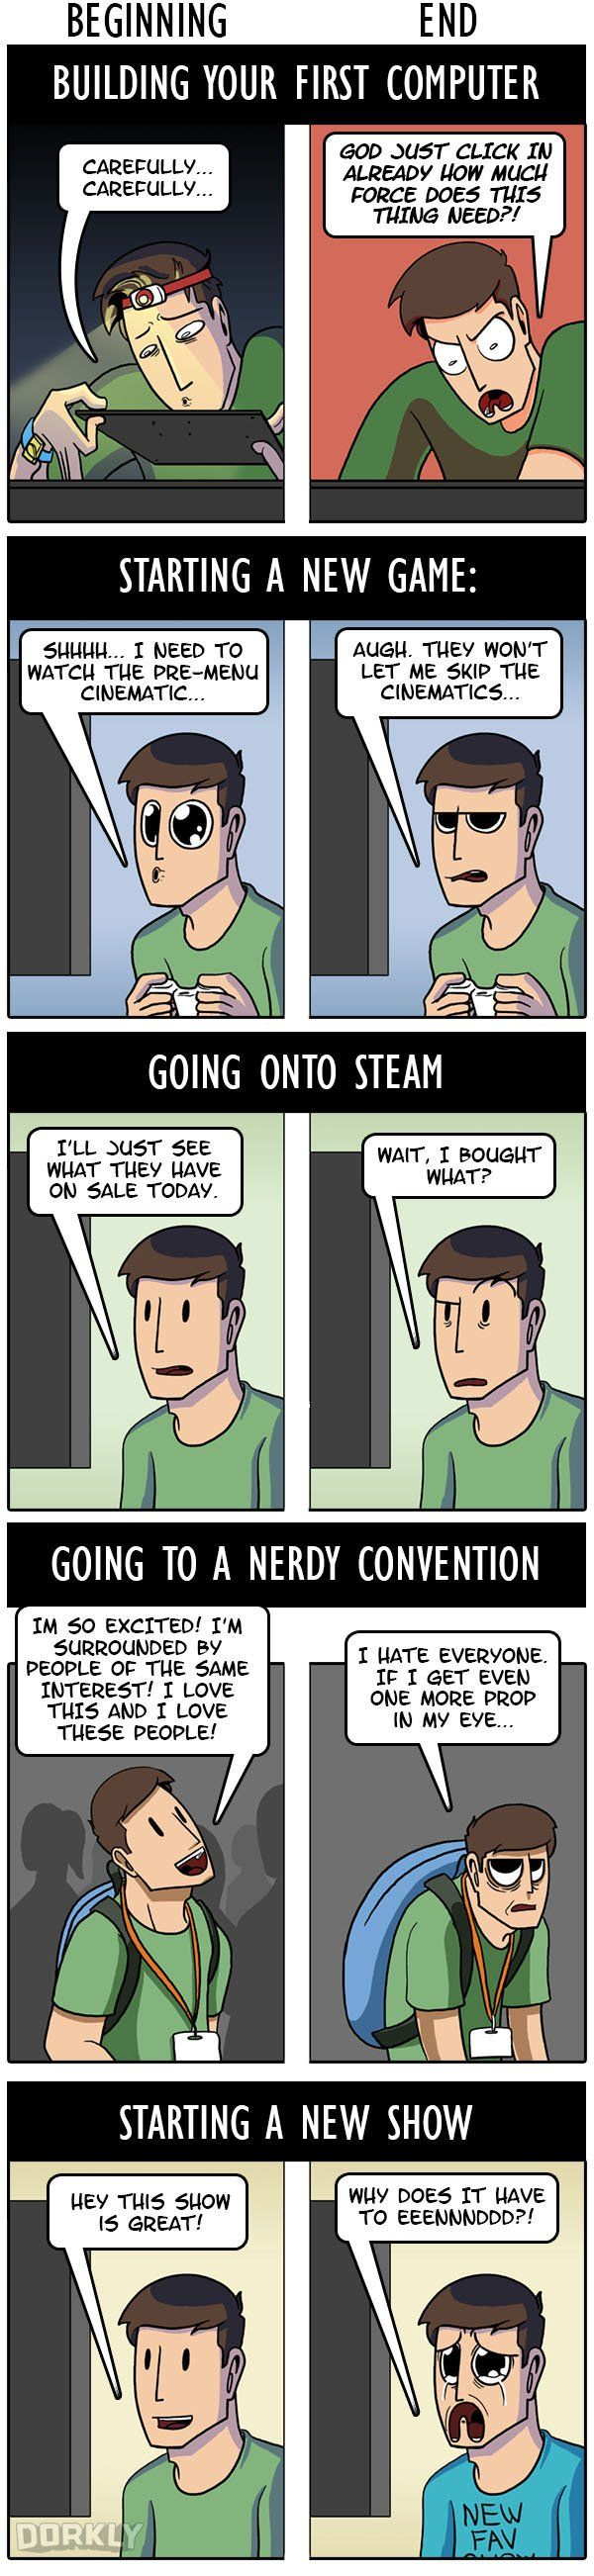 A funny comic by Julia Lepetit from Dorkly illustrating how various nerdy experience can change over time. The top panel? Yep, that used to be totally me.